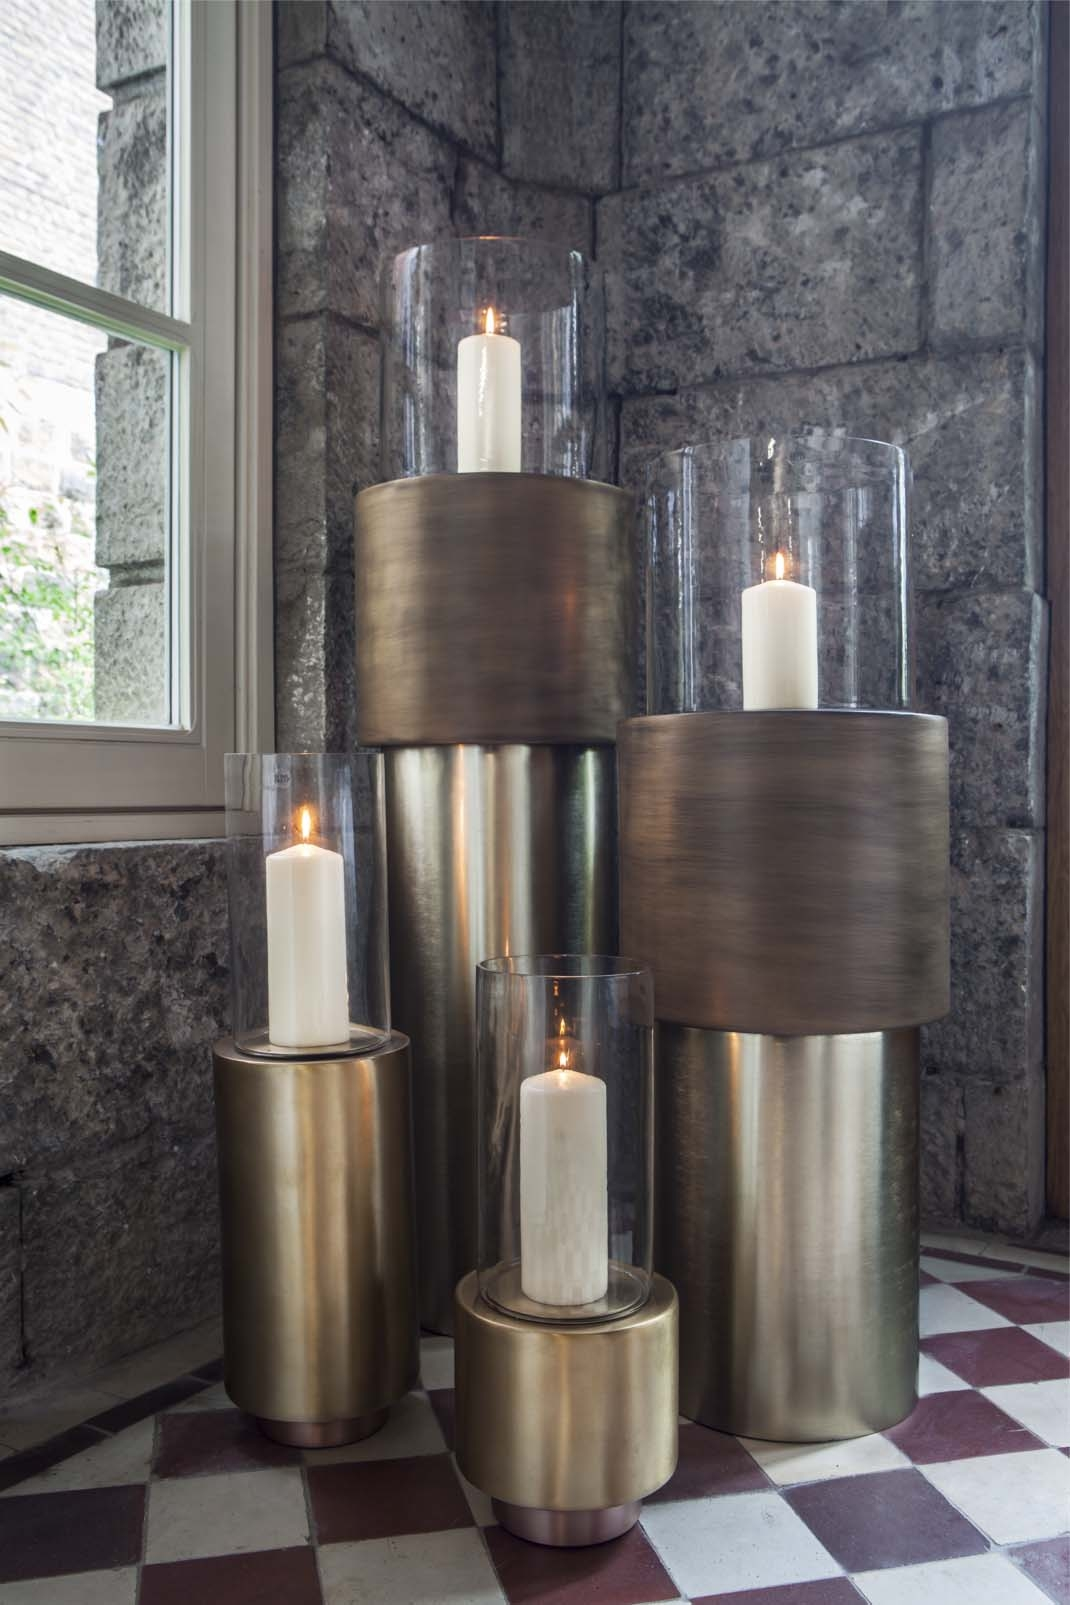 DOME DECO CANDLE HOLDERS